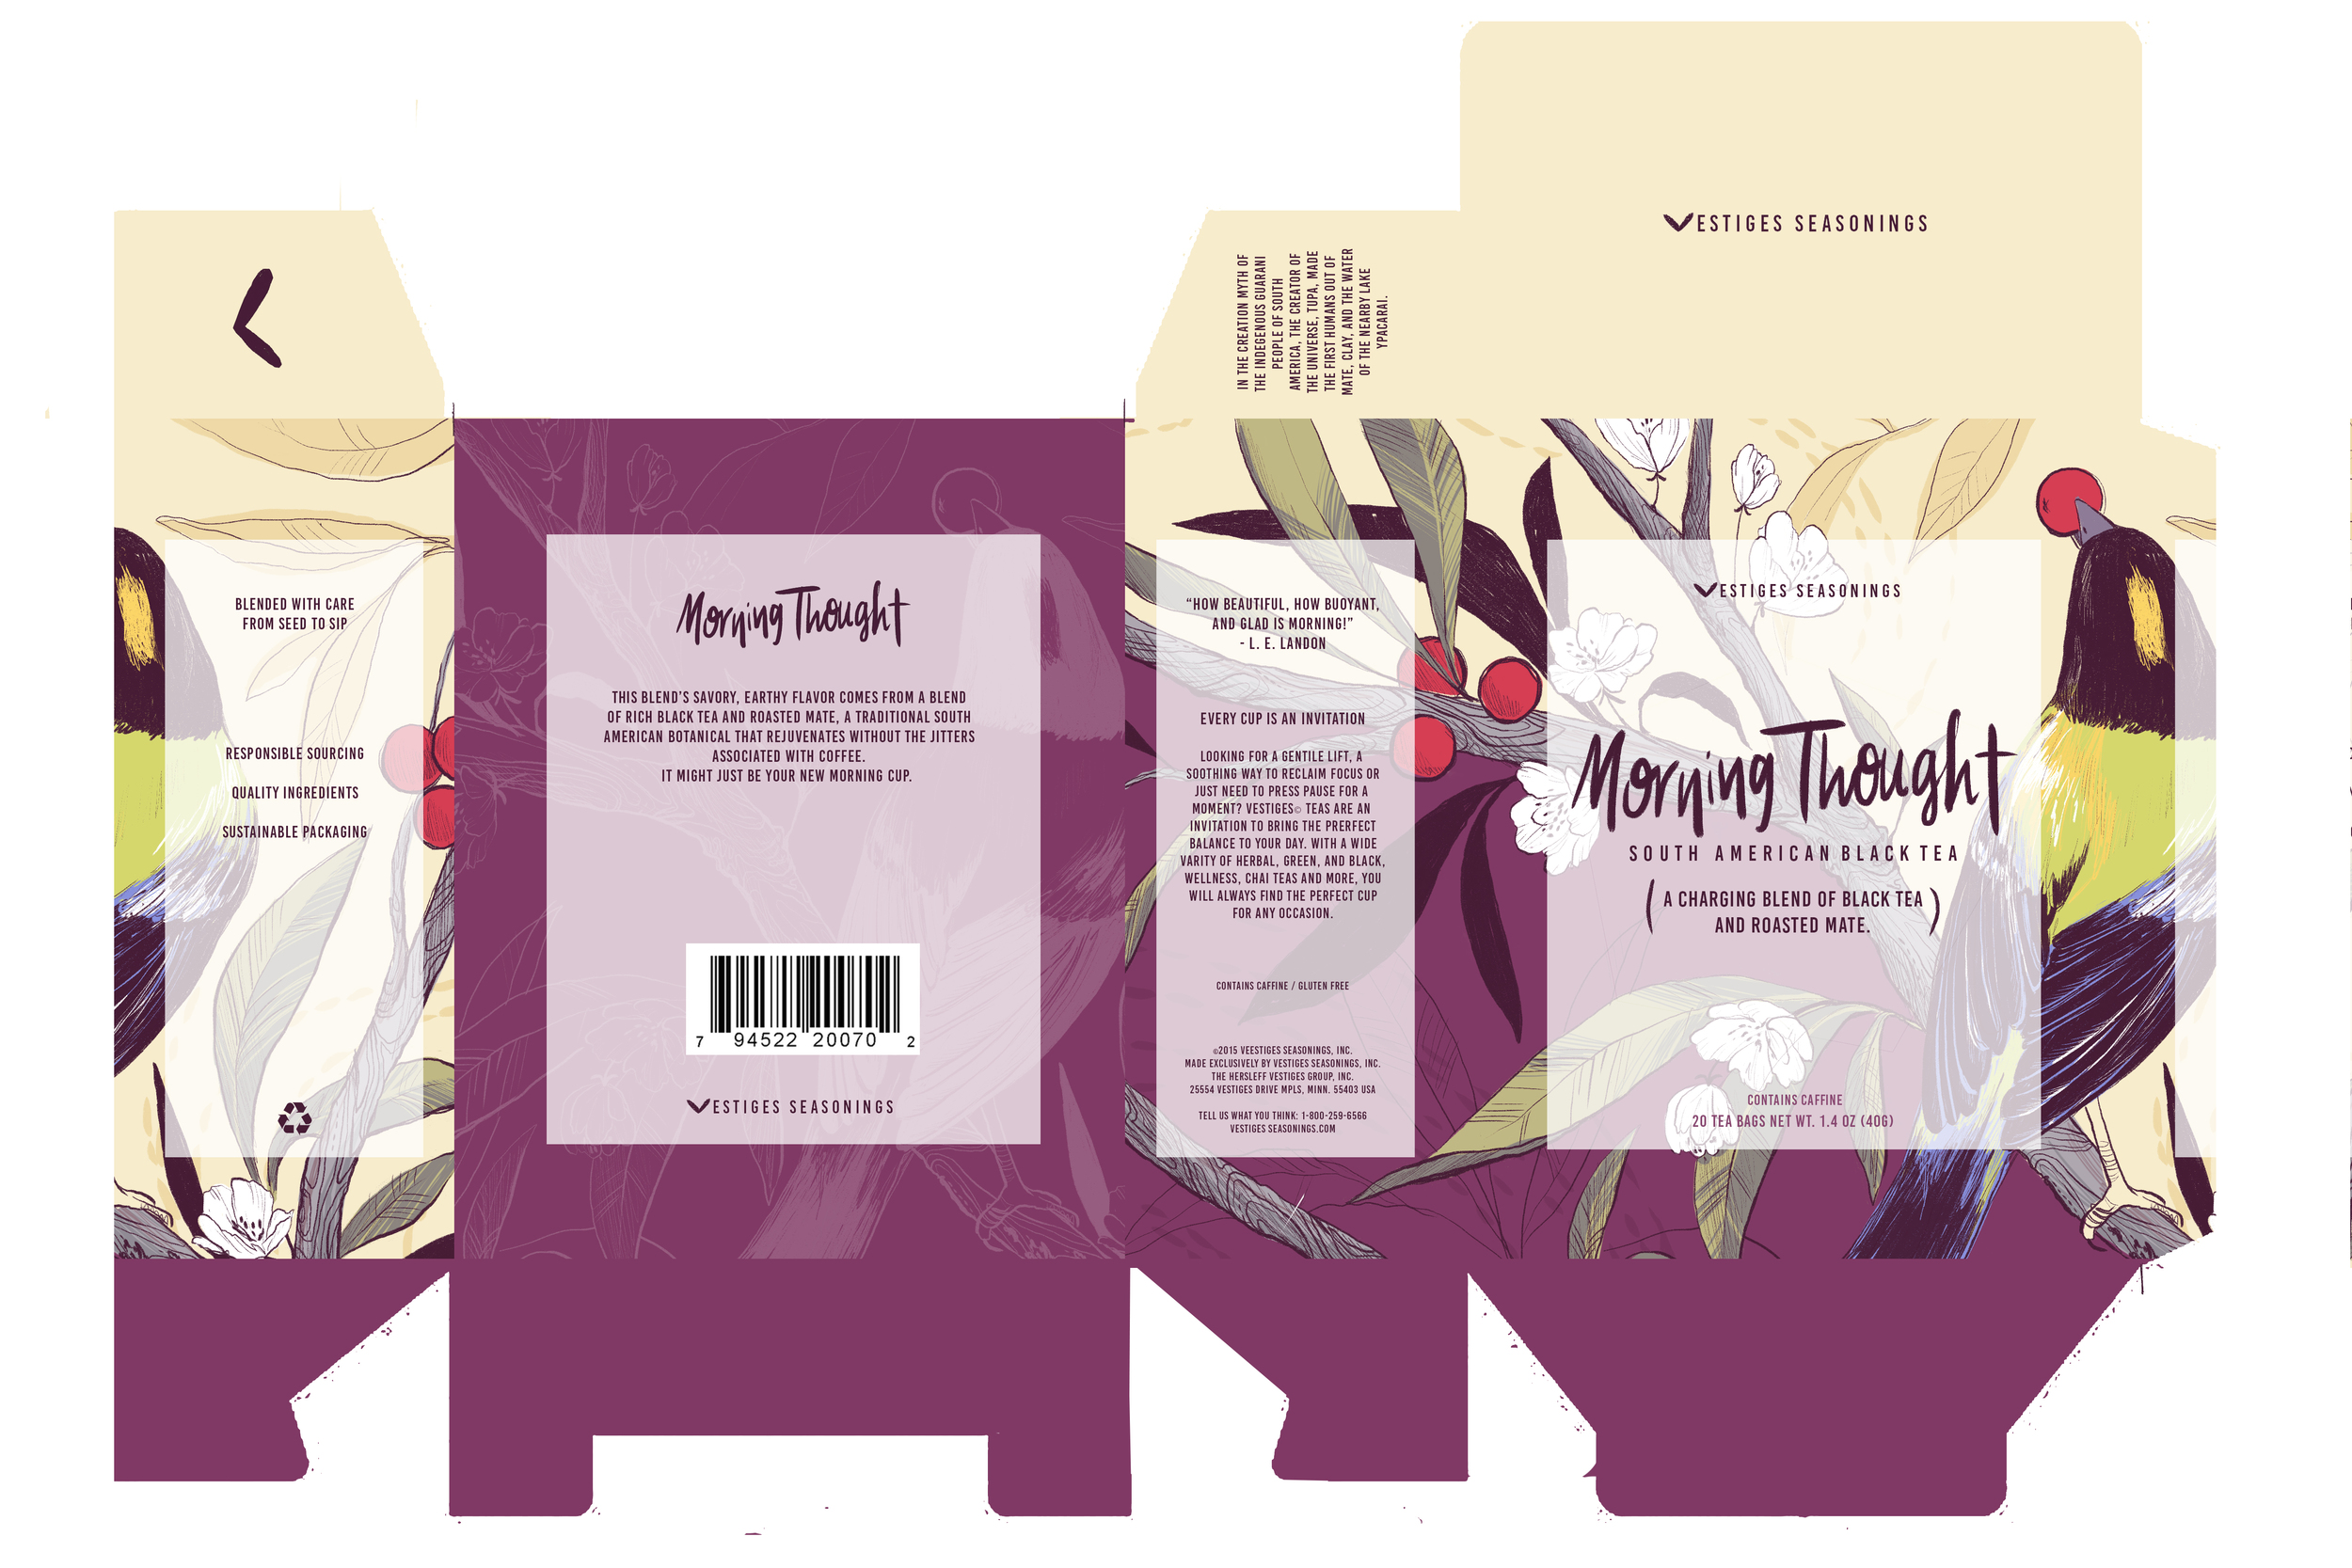 MORNING THOUGHT  Mock tea box template for a brew originating in South America